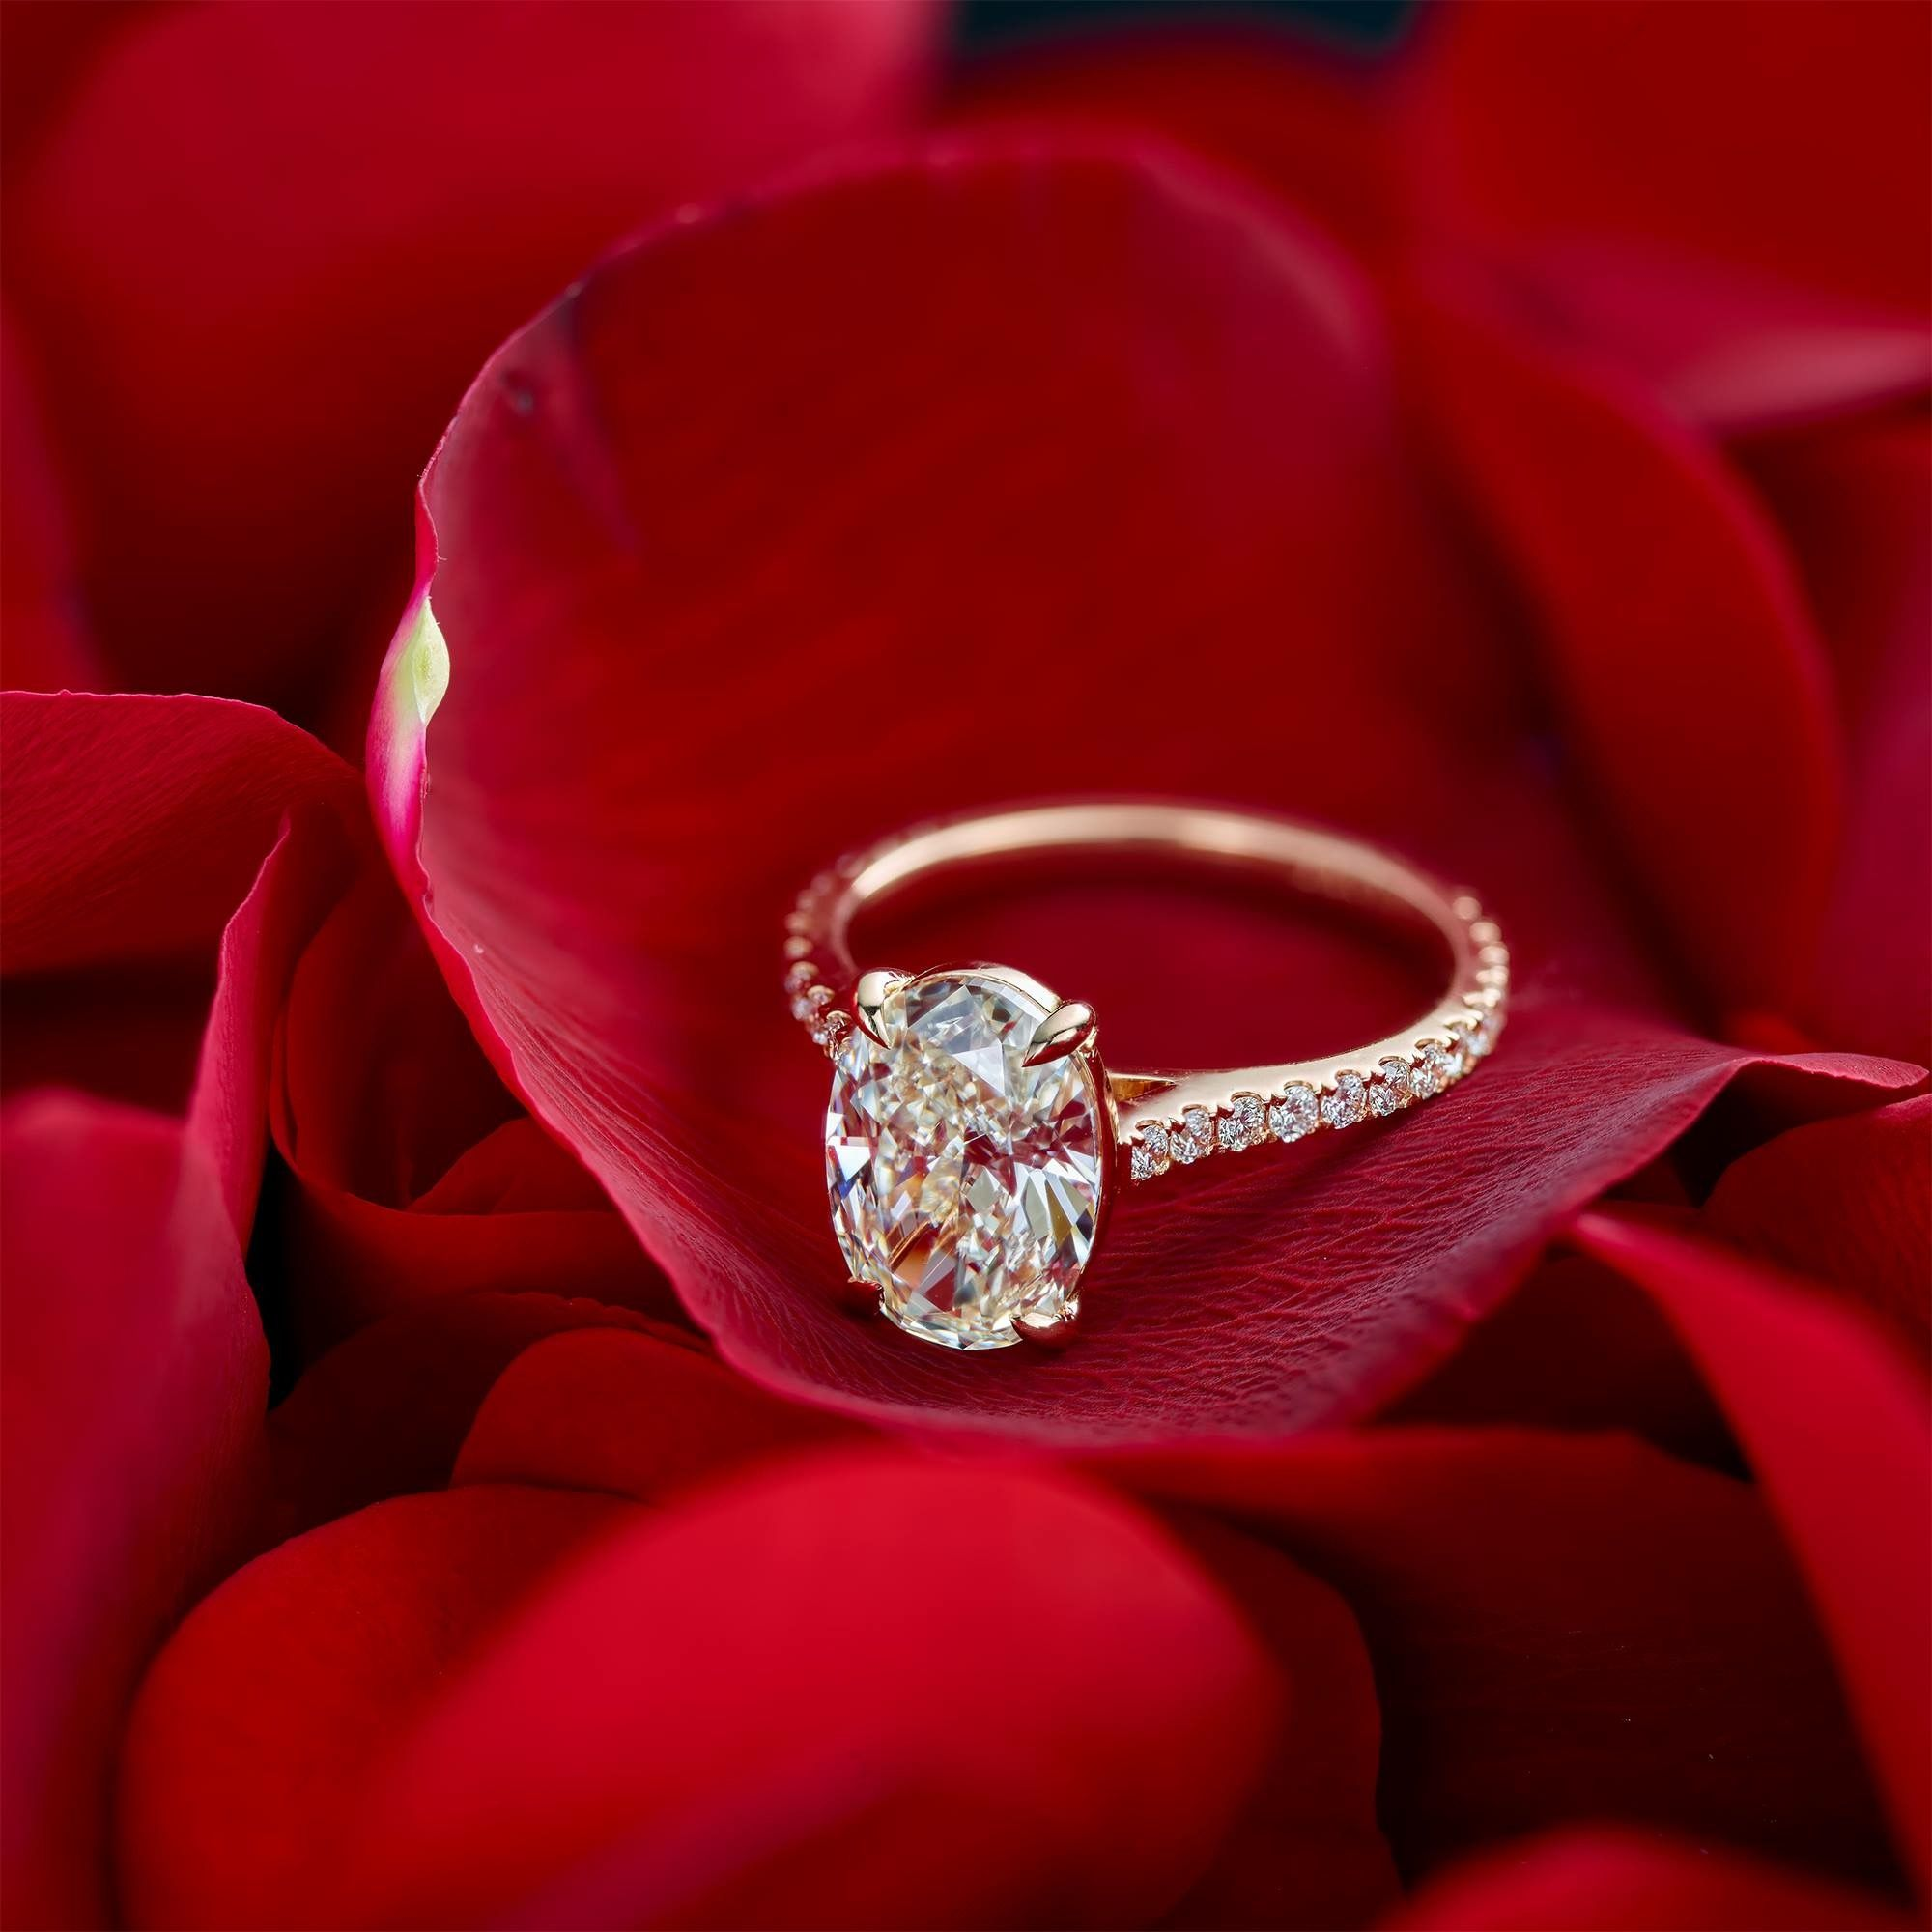 Pin by Zaza on Jewelled Pleasures Rose gold oval